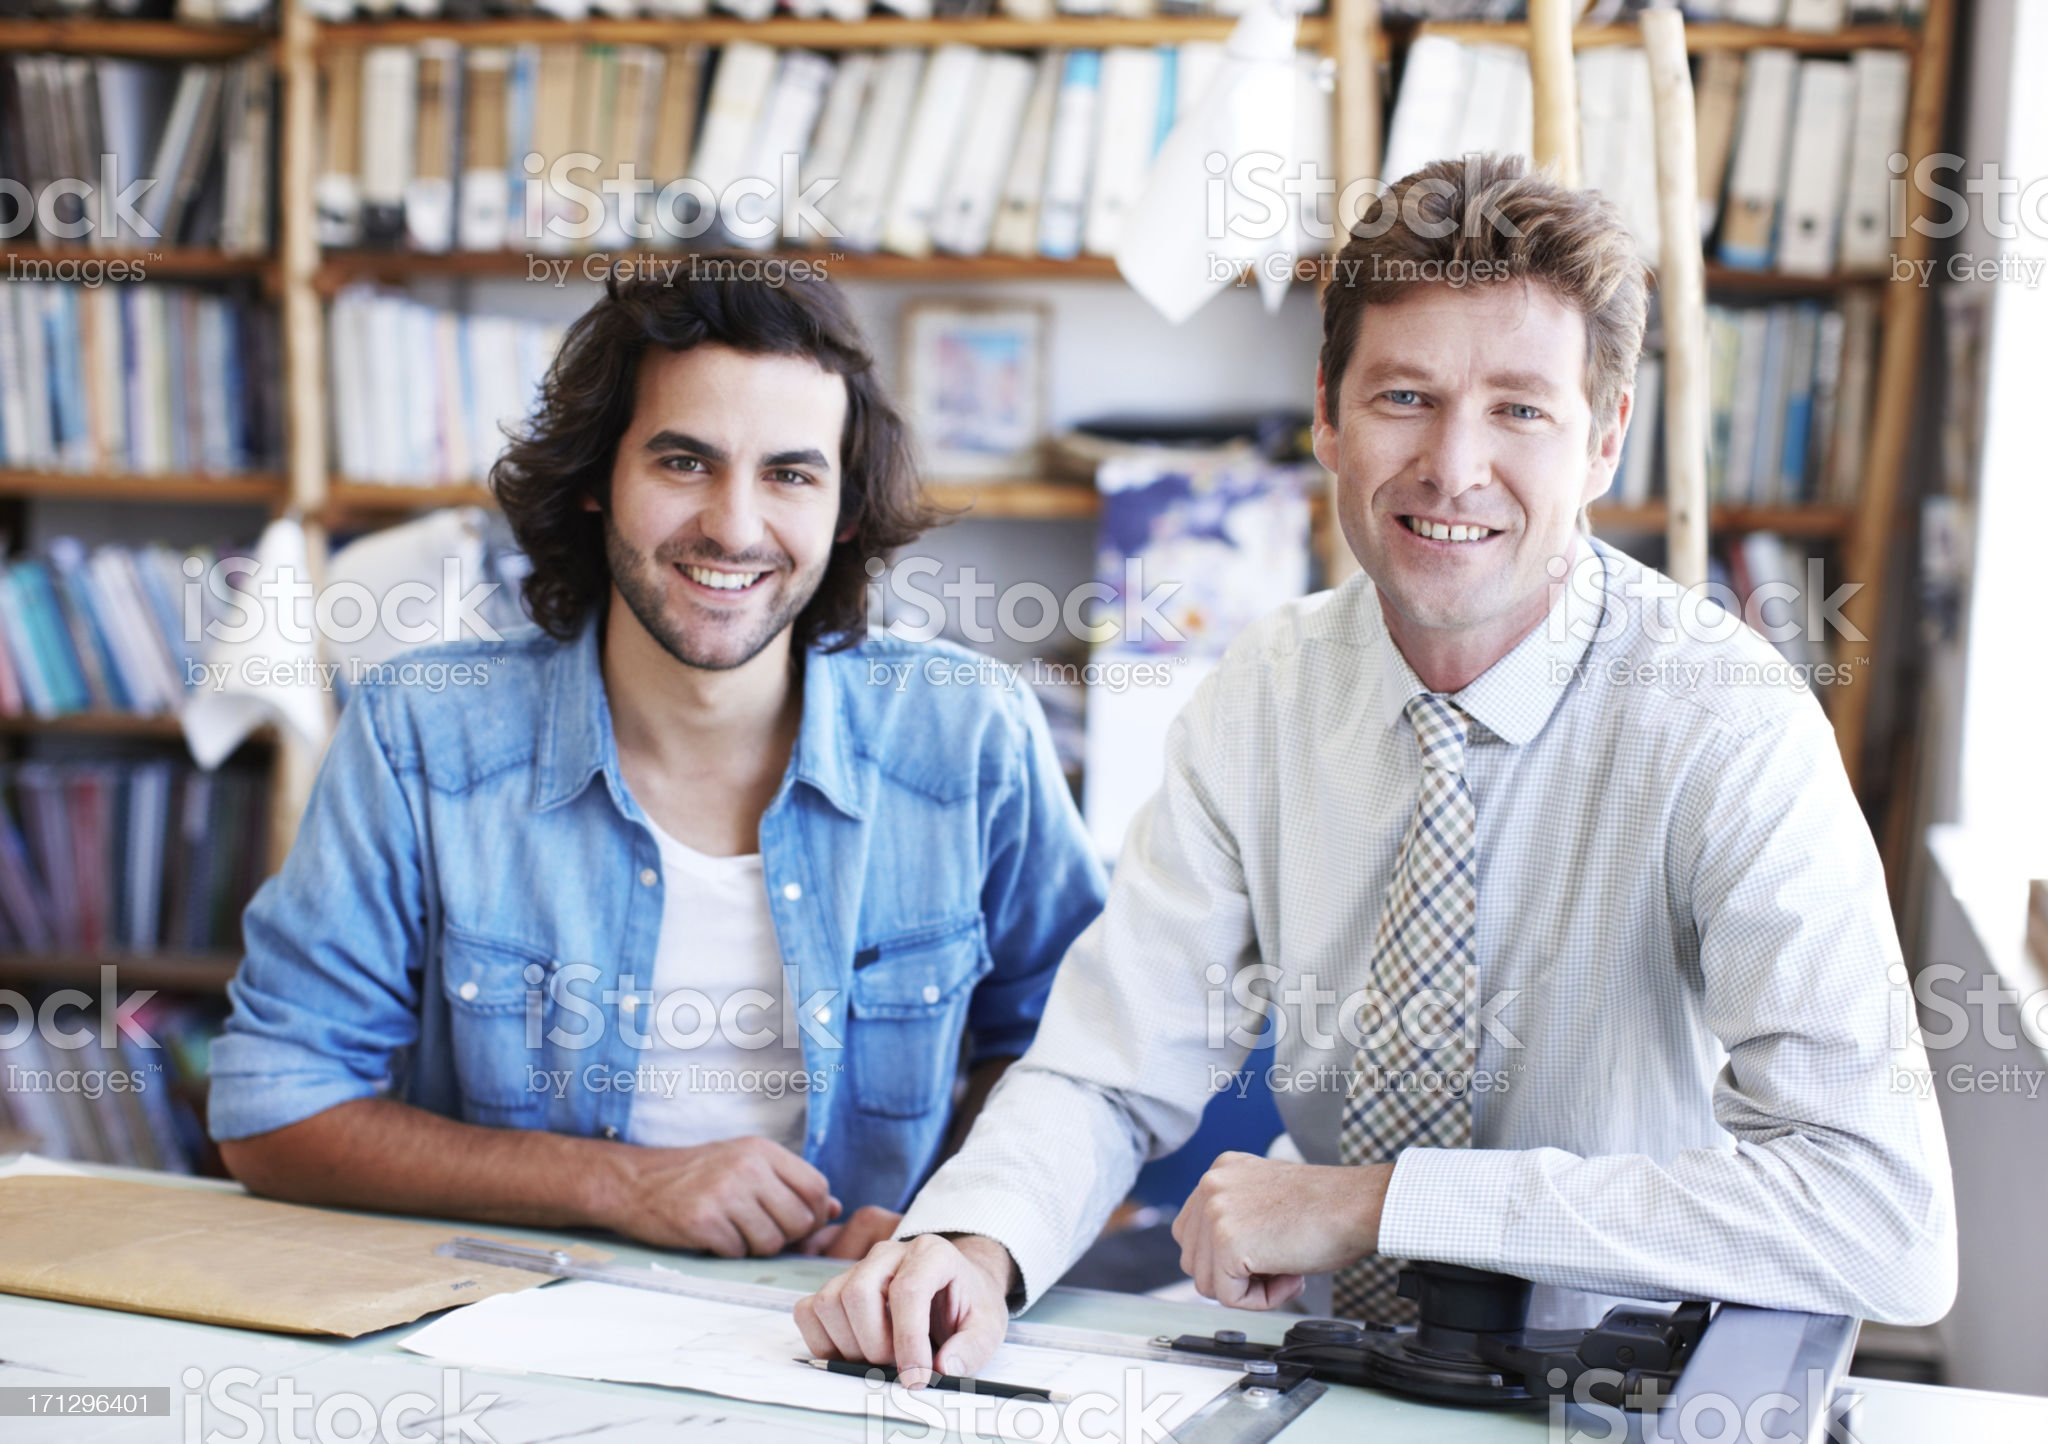 Working together with a positive attitude royalty-free stock photo